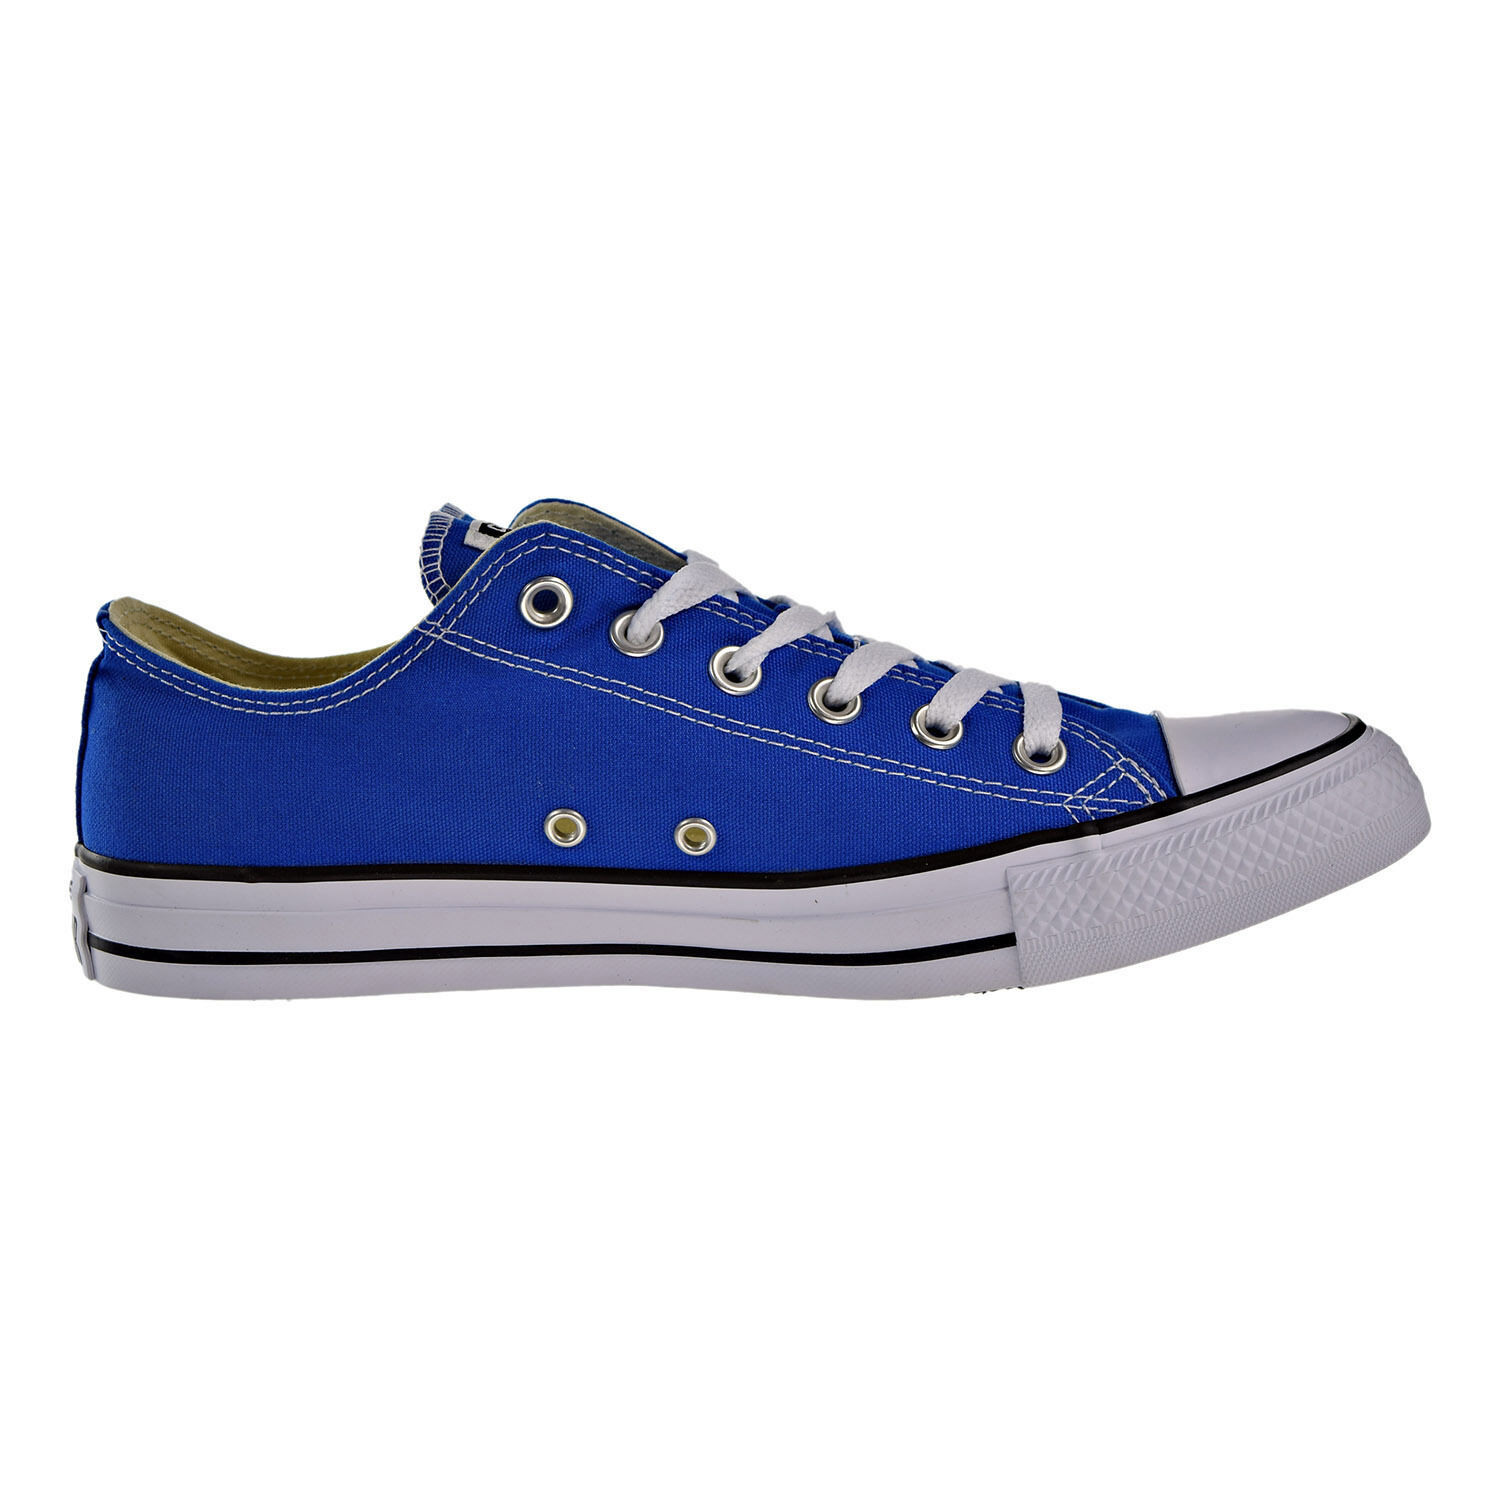 Converse Chuck Taylor All Star Seasonal Colors Low Top Unisex Solar Blue 155572F